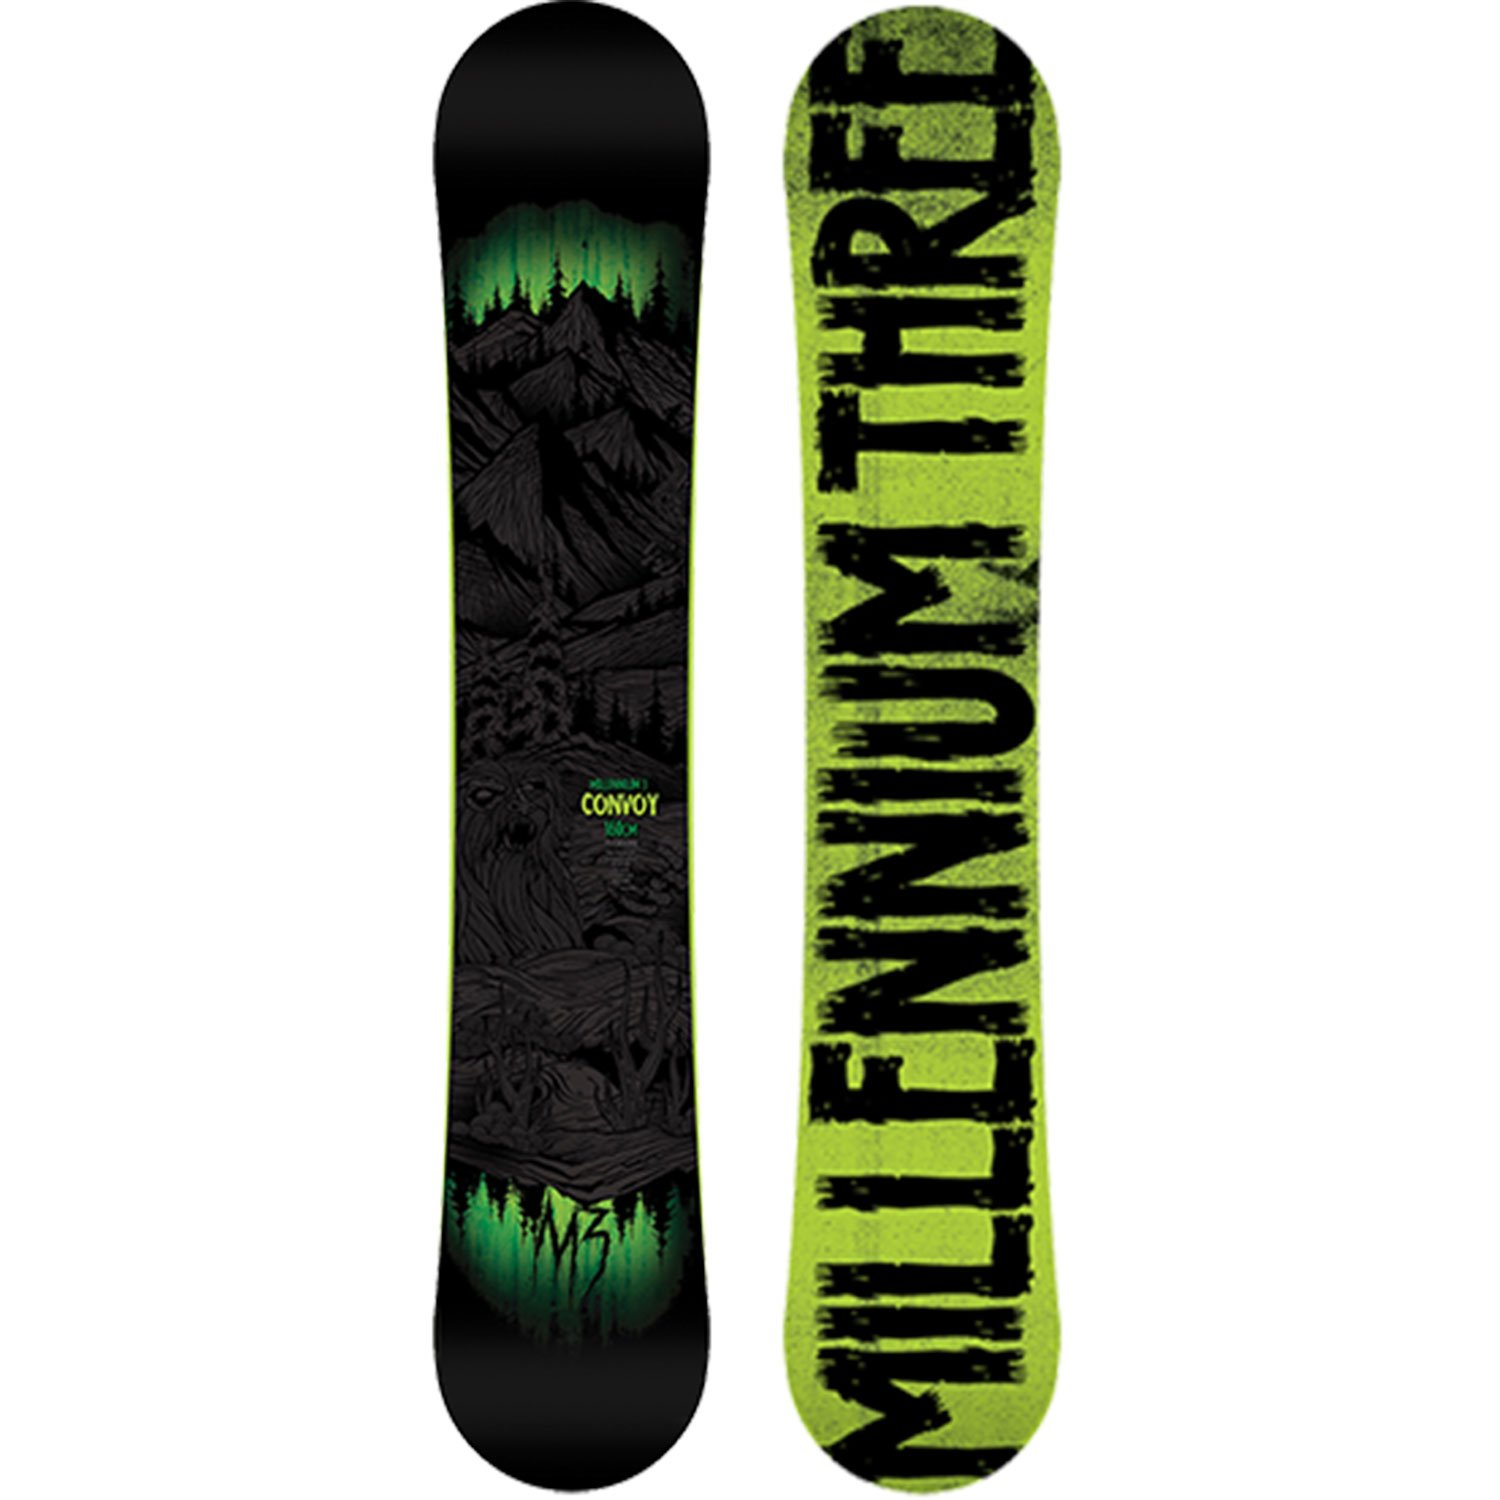 M3 Convoy (14) Snowboard by M3